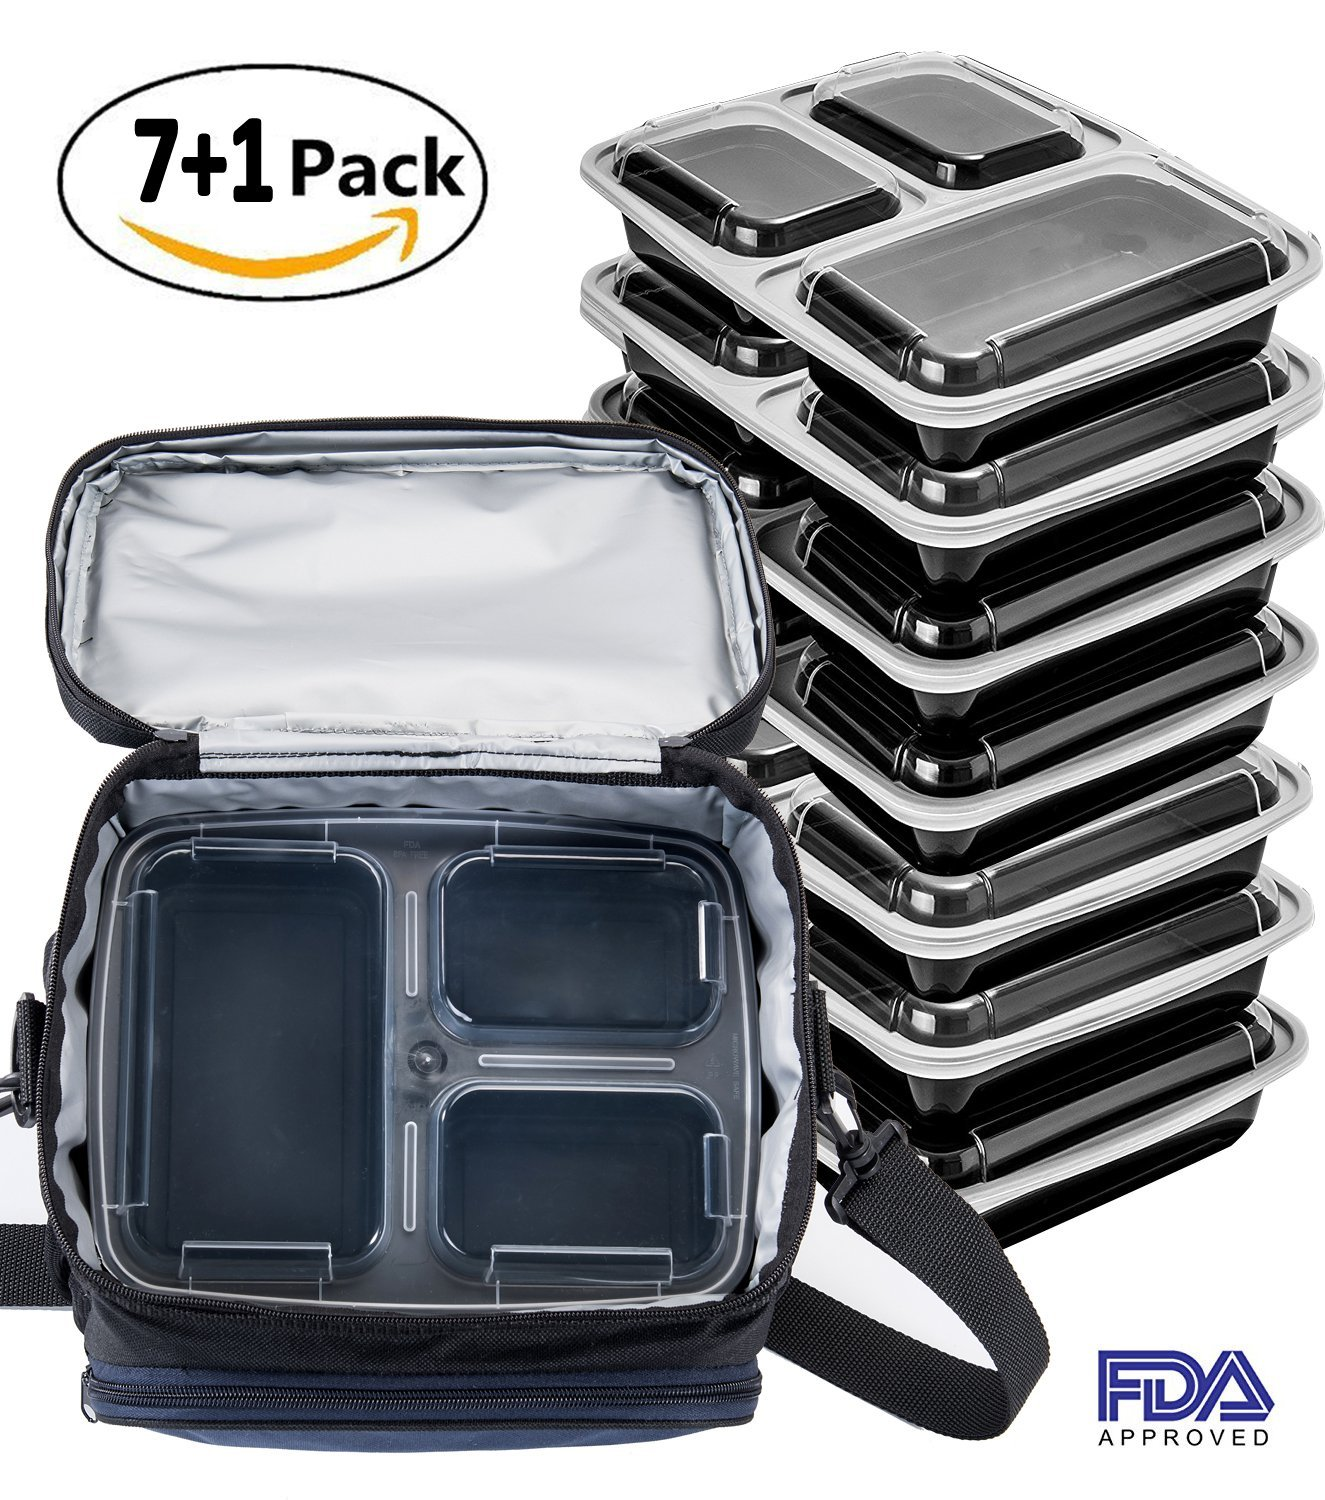 Lunch Box Bag with Meal Prep Containers 3 Compartment(7 Pack) Insulated Lunch Bag Cooler Bag with Portion Control Food Containers Lunch Box Bag for Meal Prep